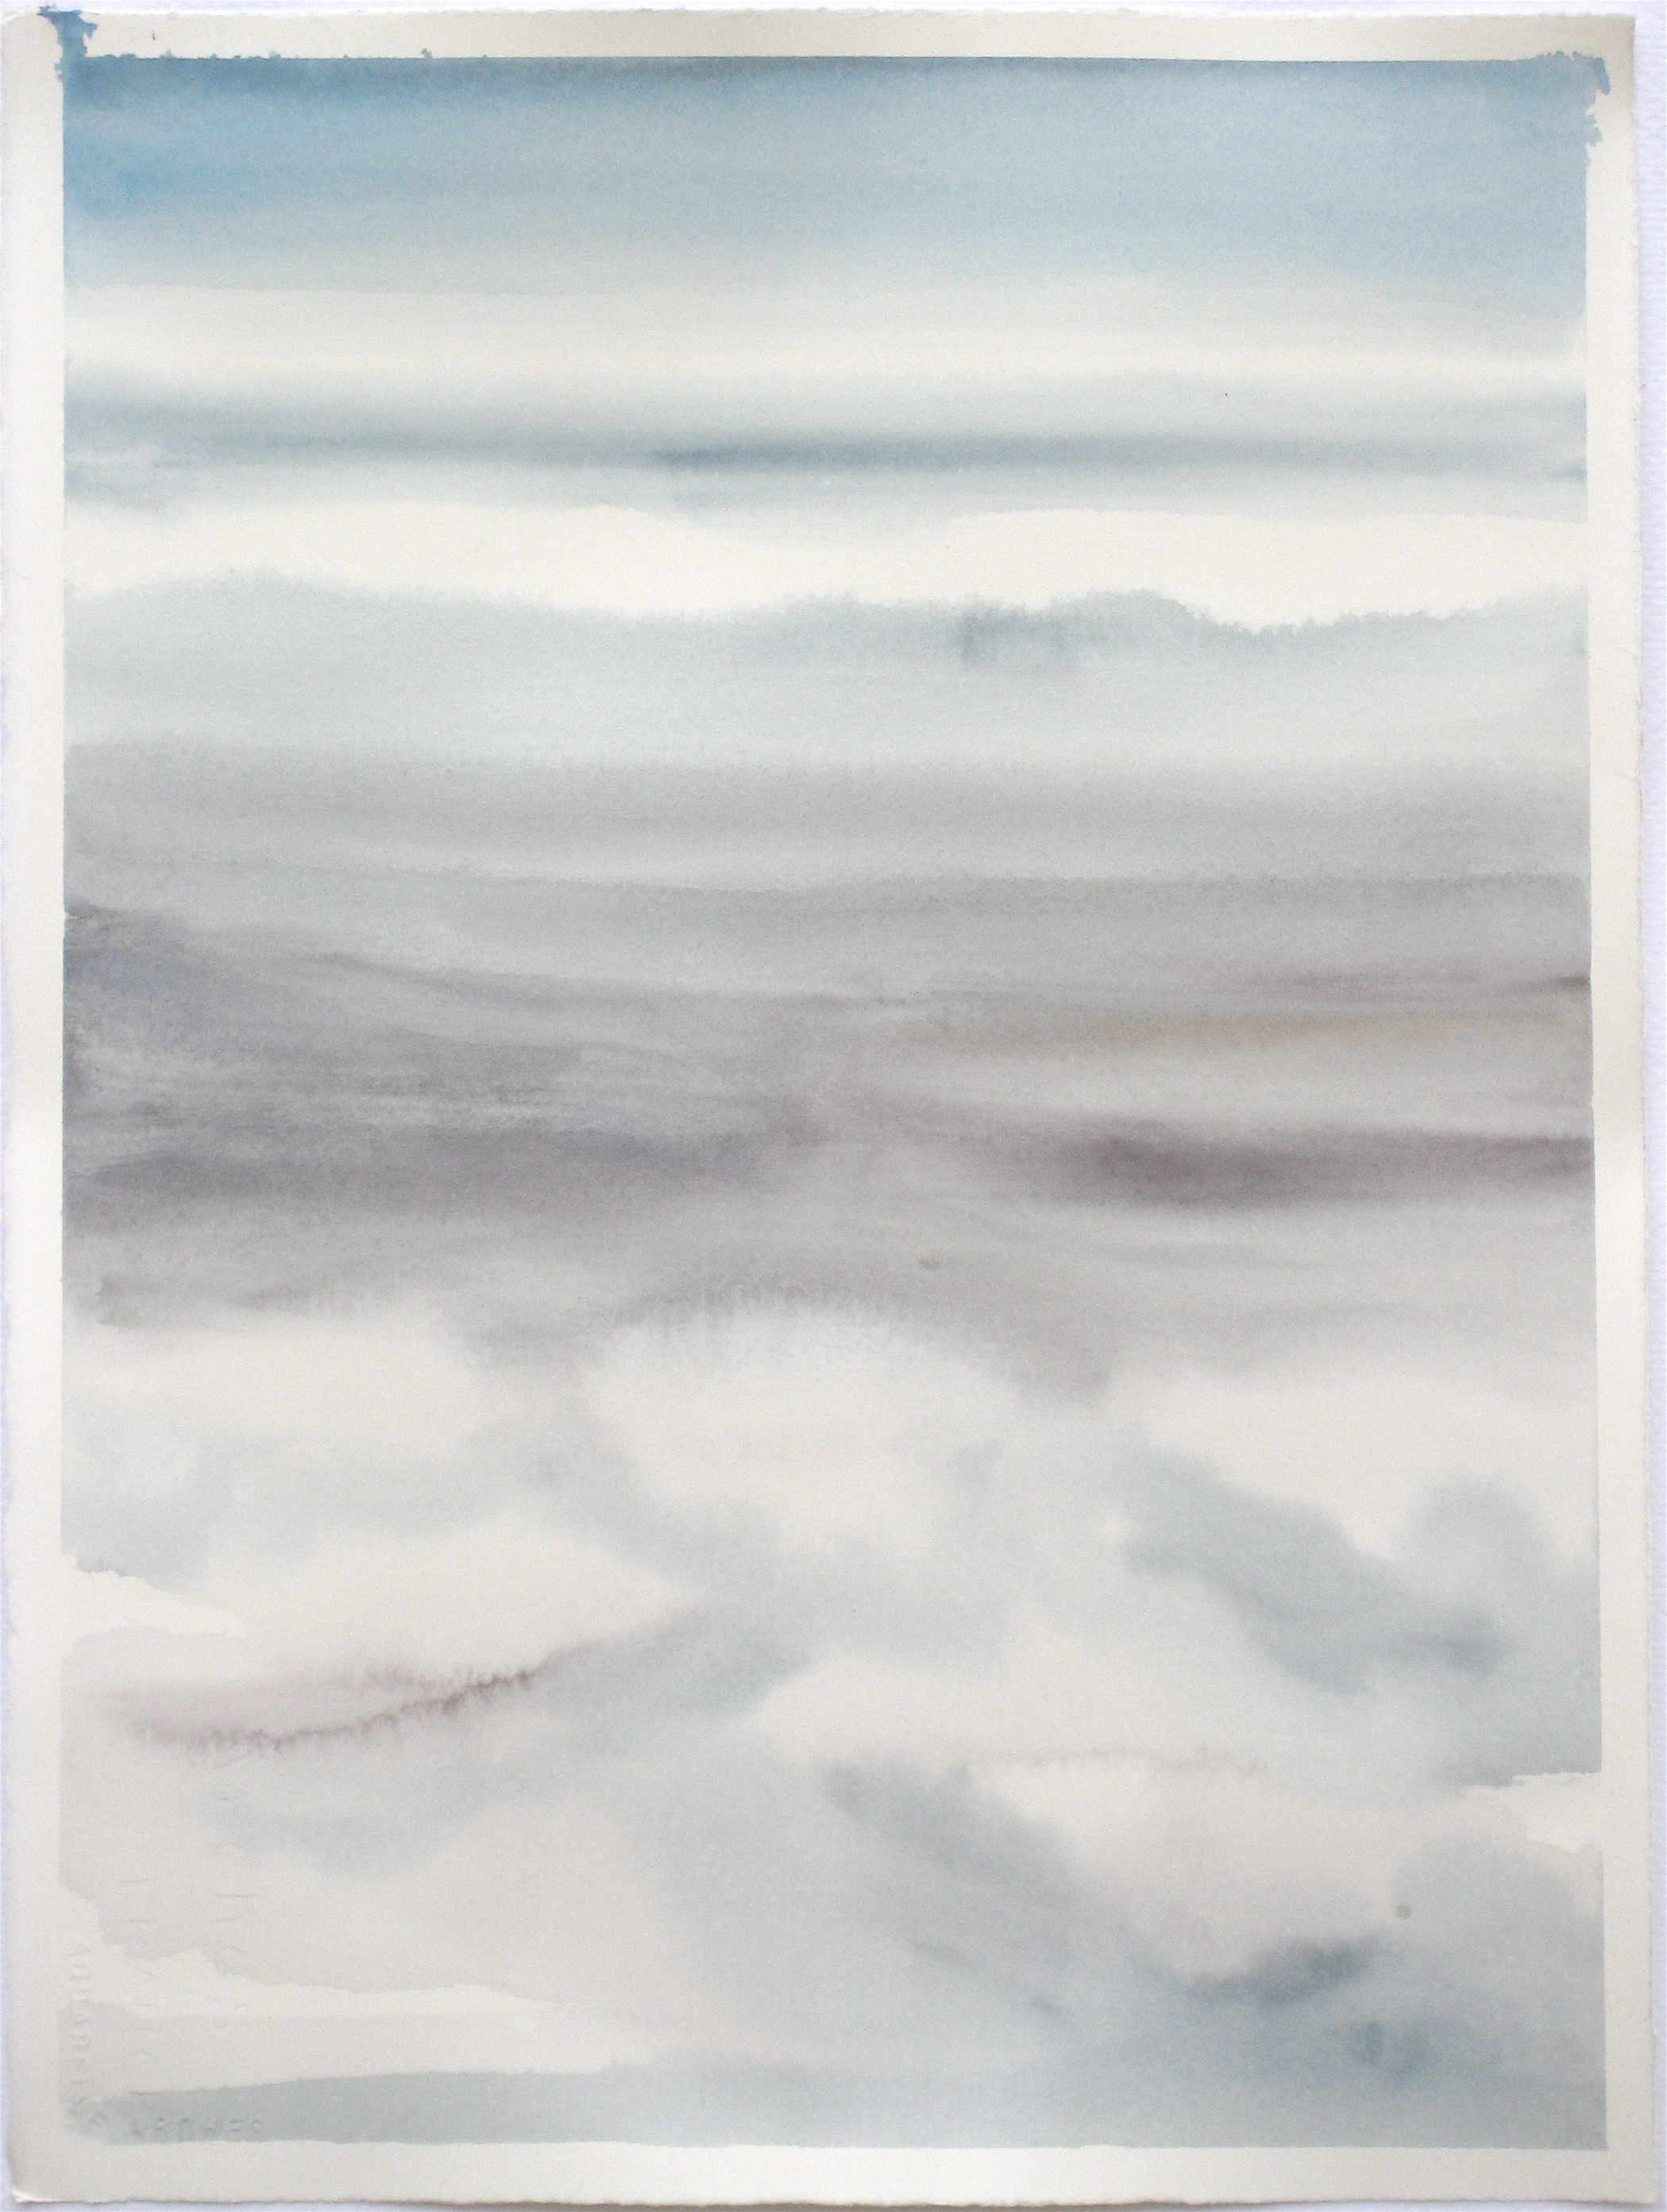 """Sky #2.4/2007, 2007 watercolor on paper paper: 15 1/4""""x11 1/4""""; image: 14 1/2""""x10 1/4"""""""